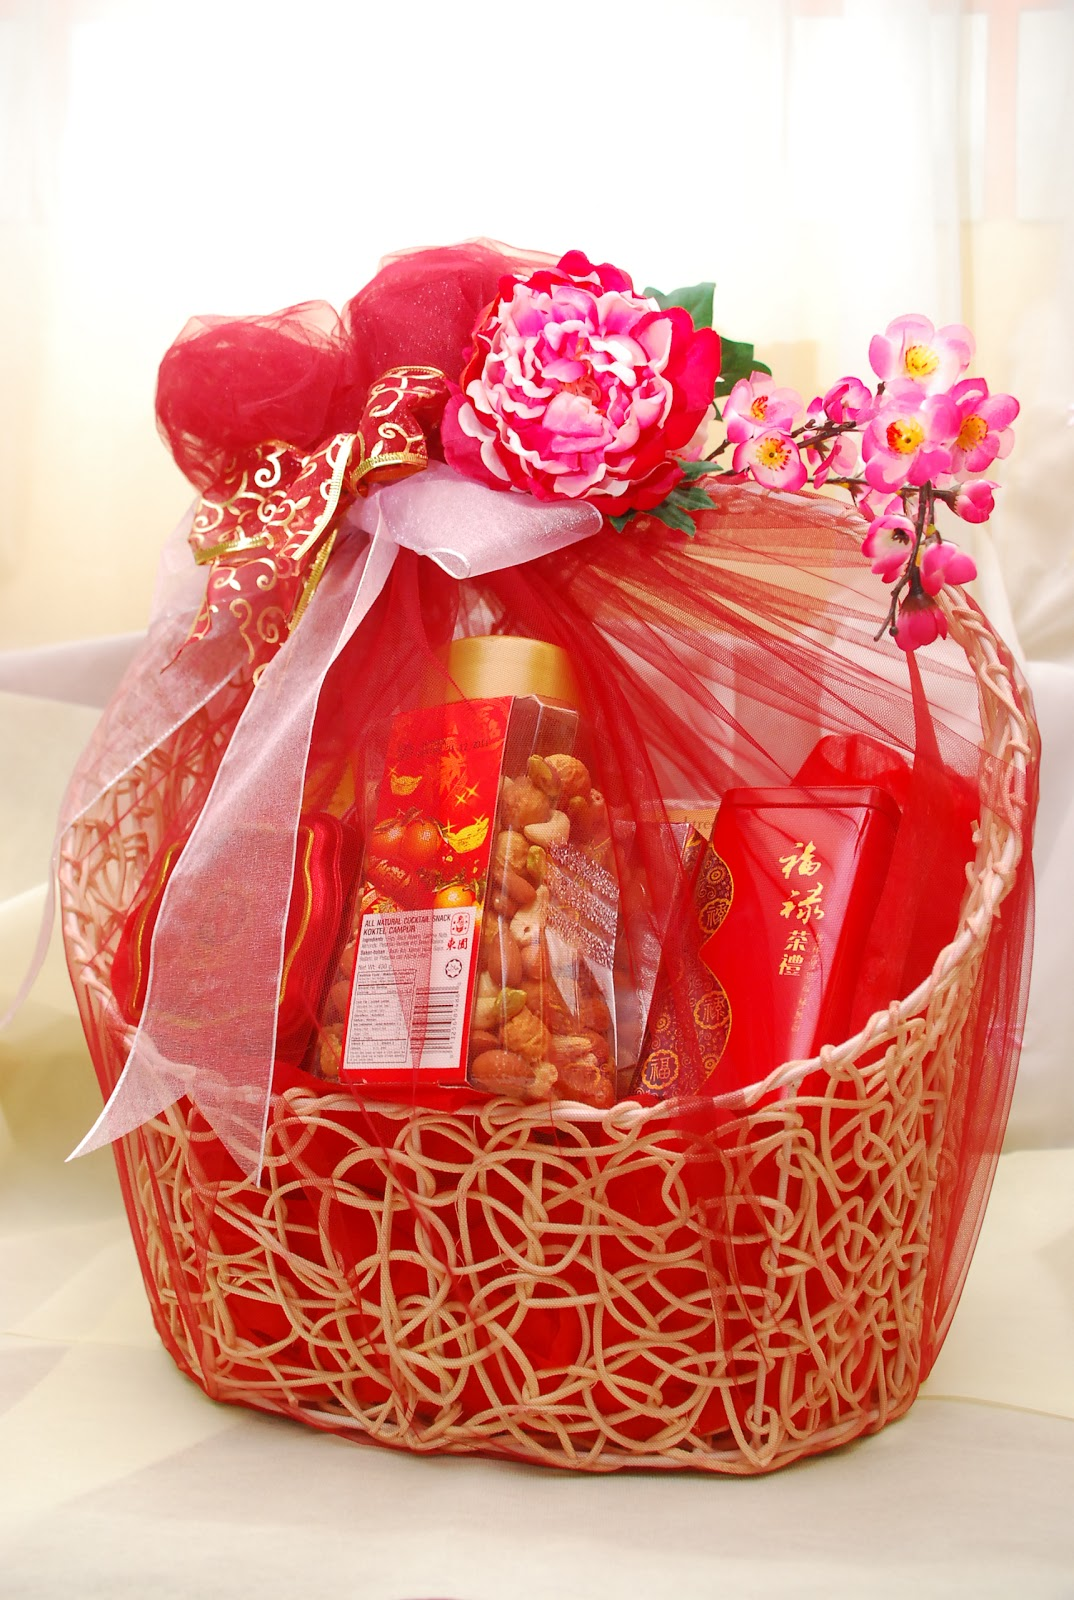 Hamper Gift Basket & Wedding Gallery: Chinese New Hampers 2011. RM280 ...